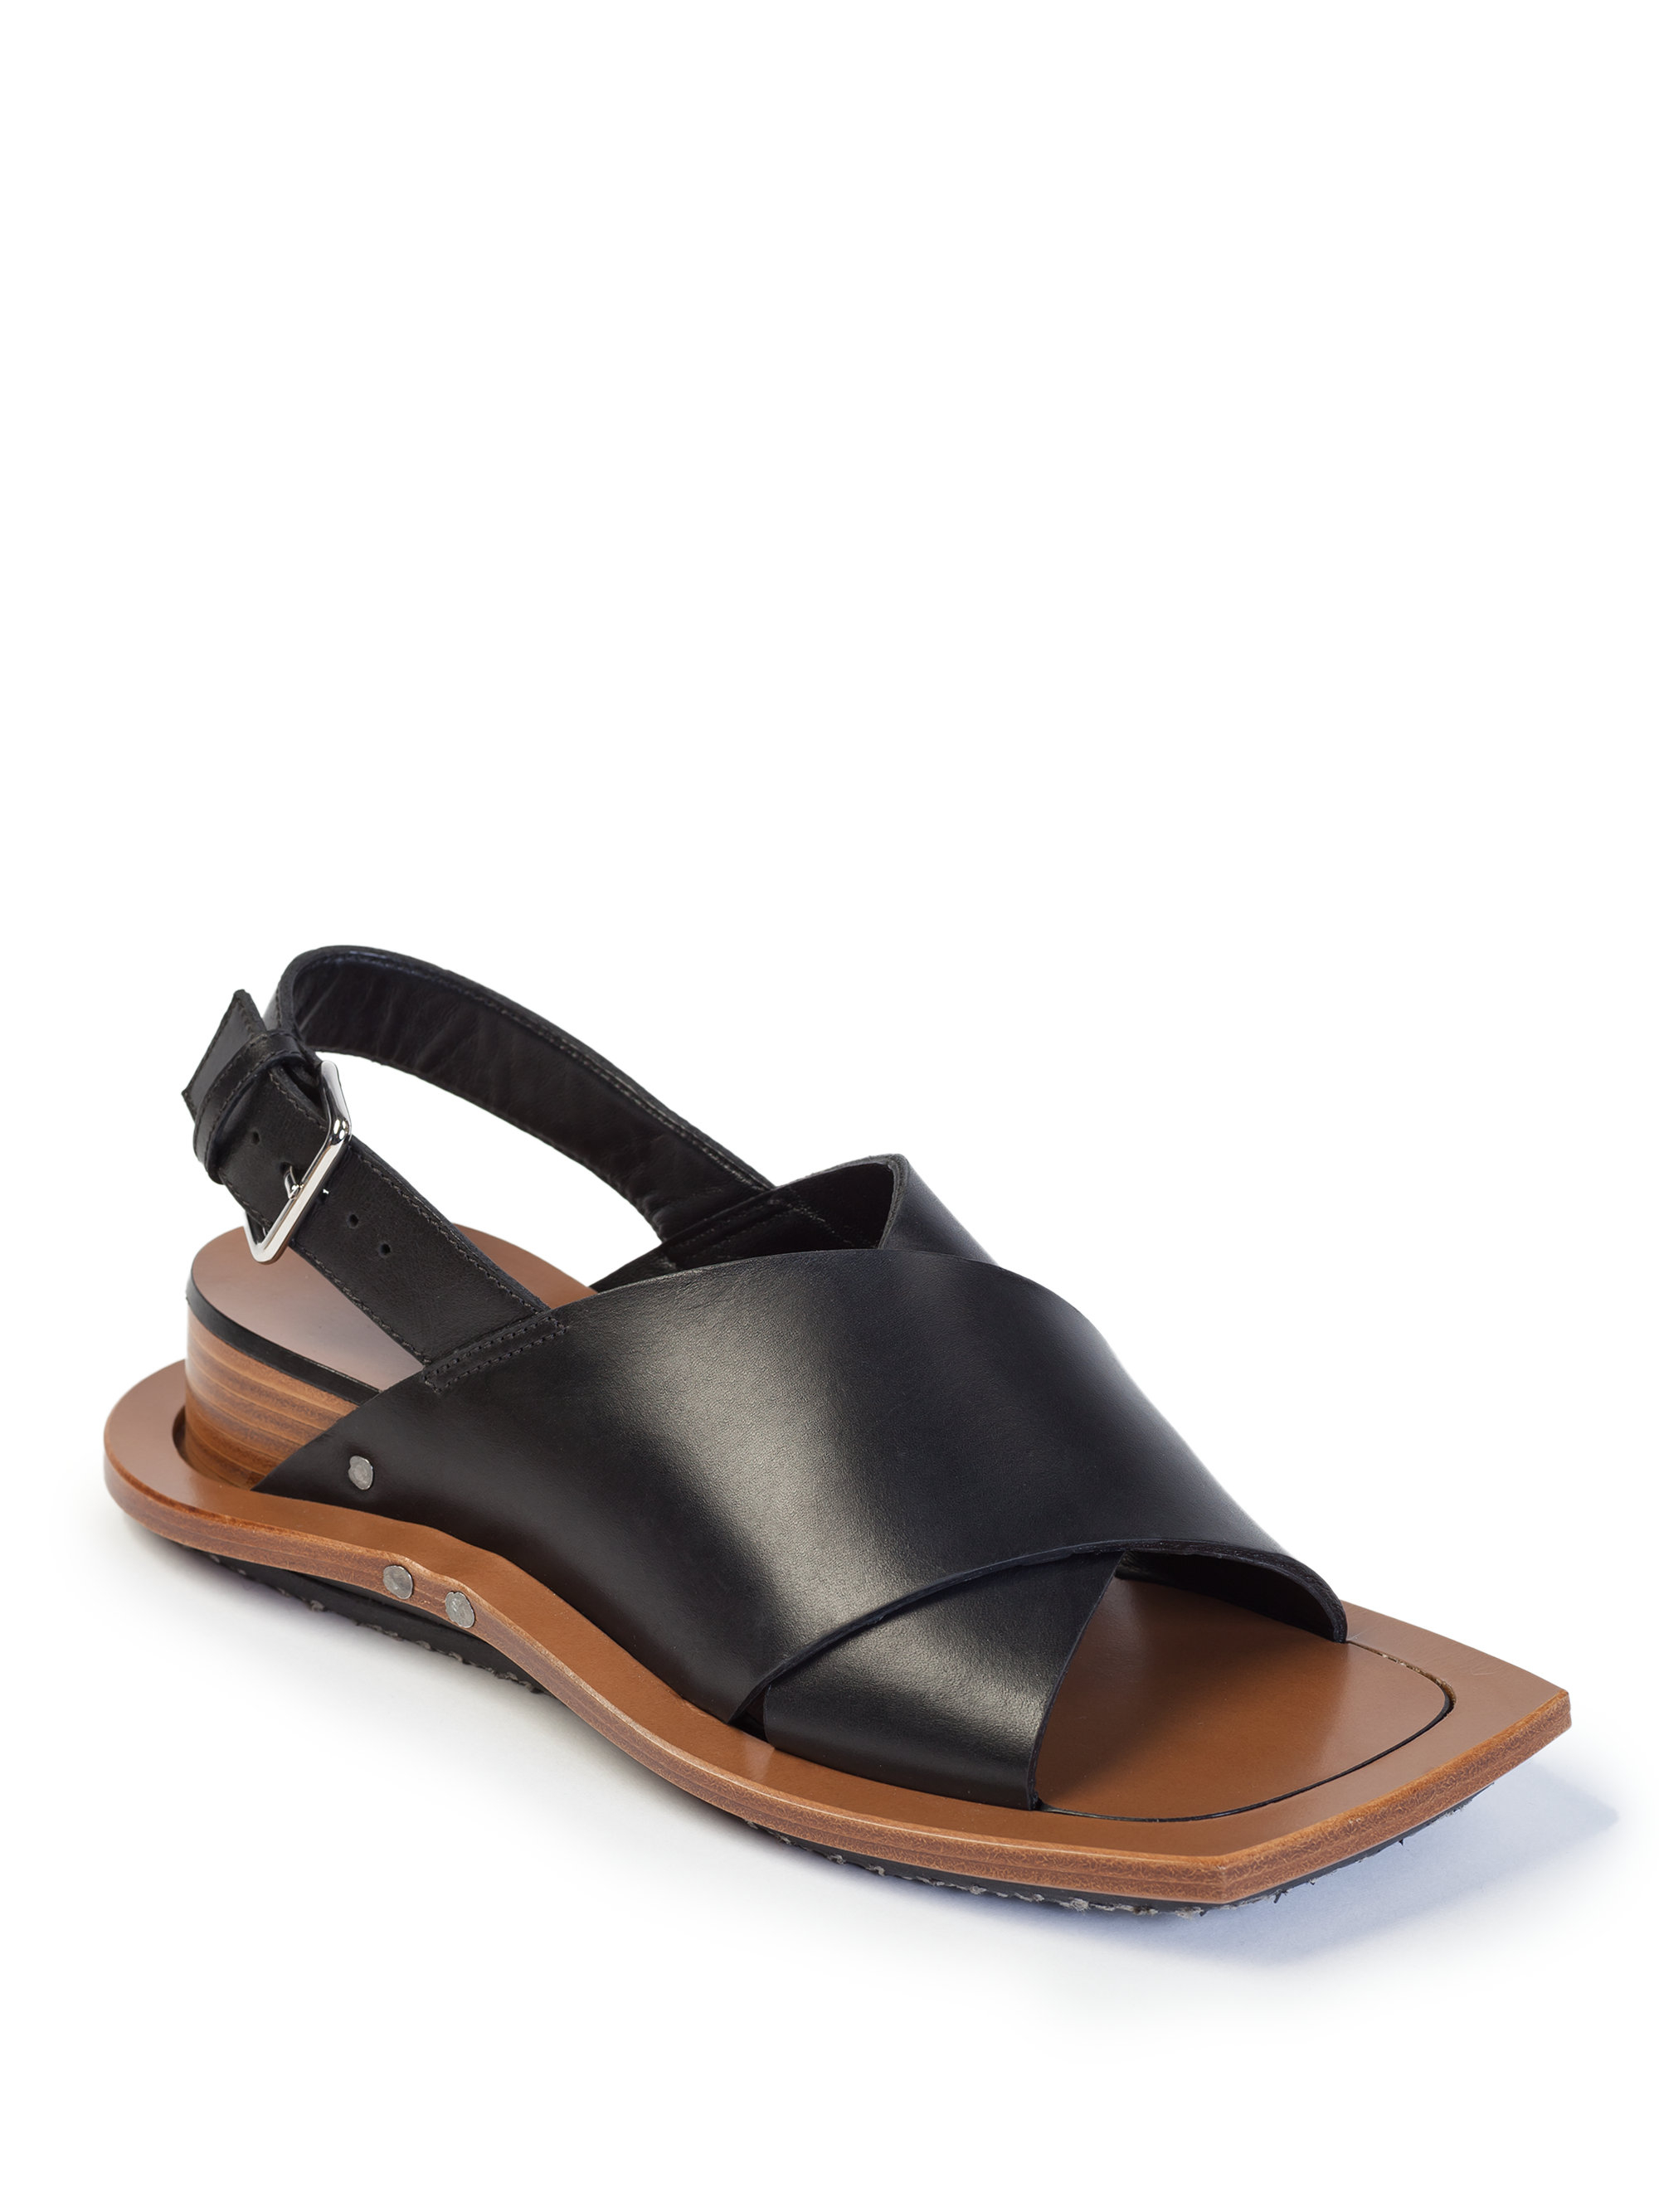 Marni Leather Platform Slingback Sandals amazon footaction cheap fast delivery clearance online cheap real discount lowest price hwV7krlXIE